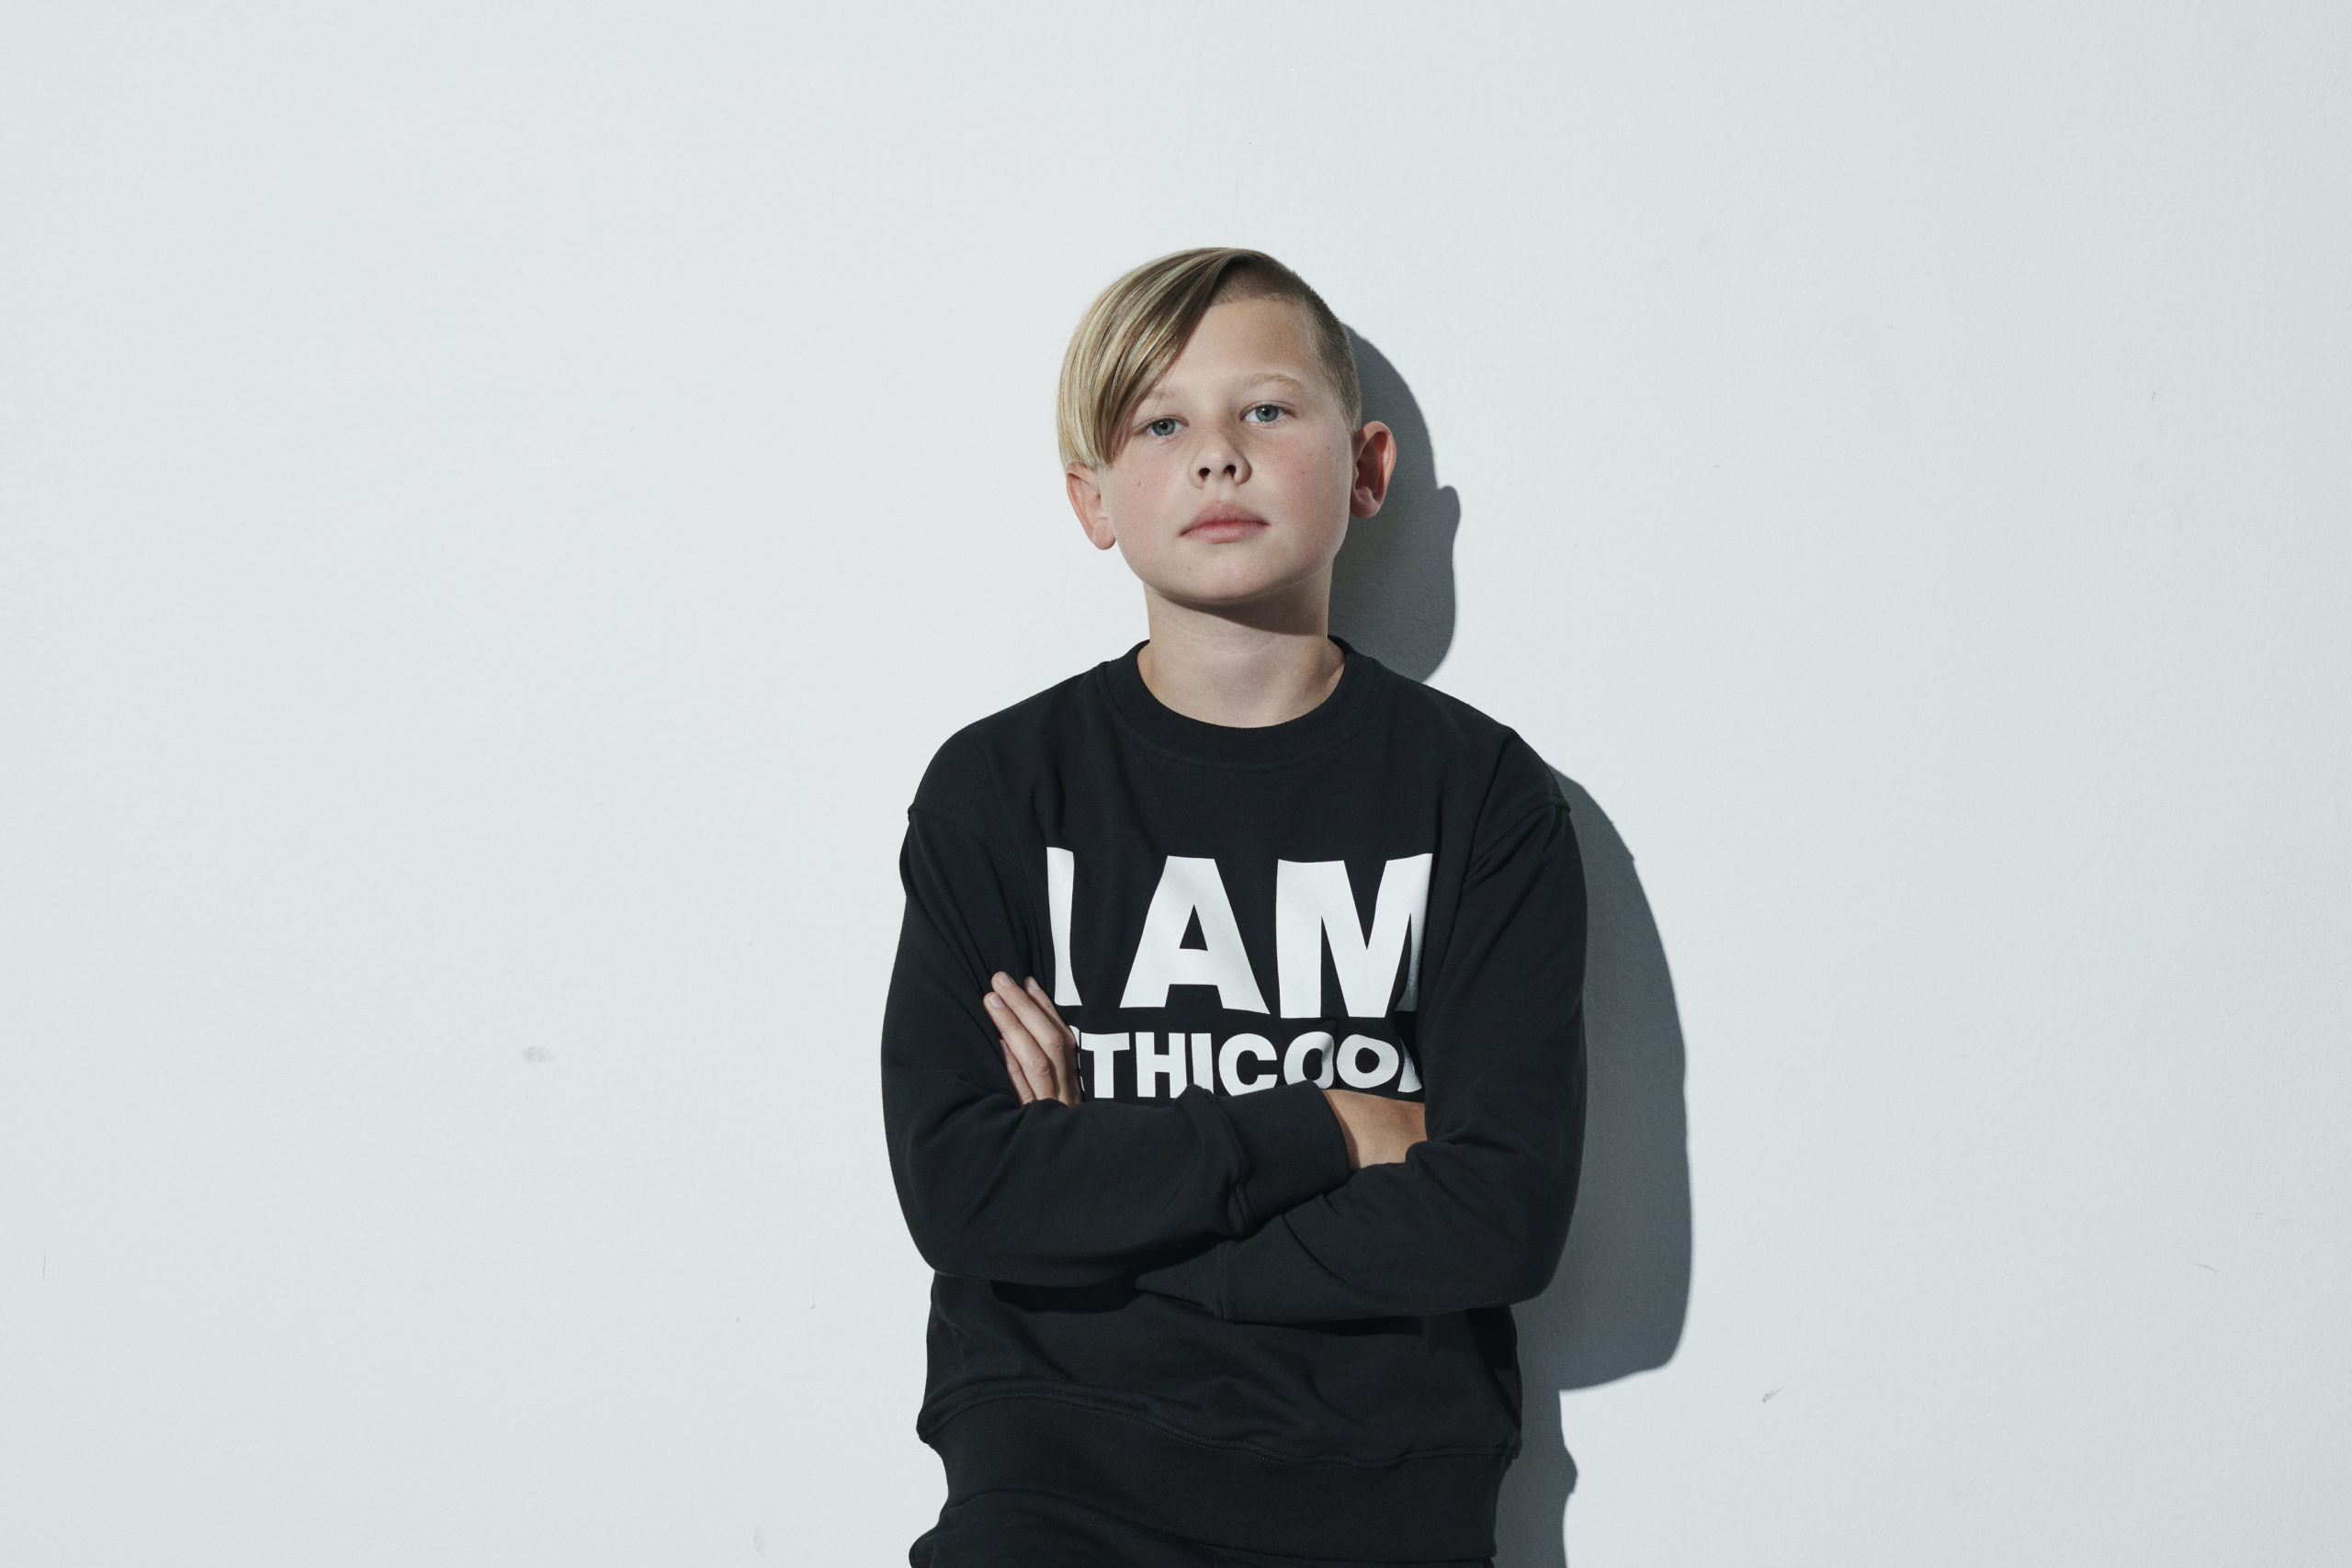 'I am ethicool' The Danish kids brand New Generals relaunches for FW2020